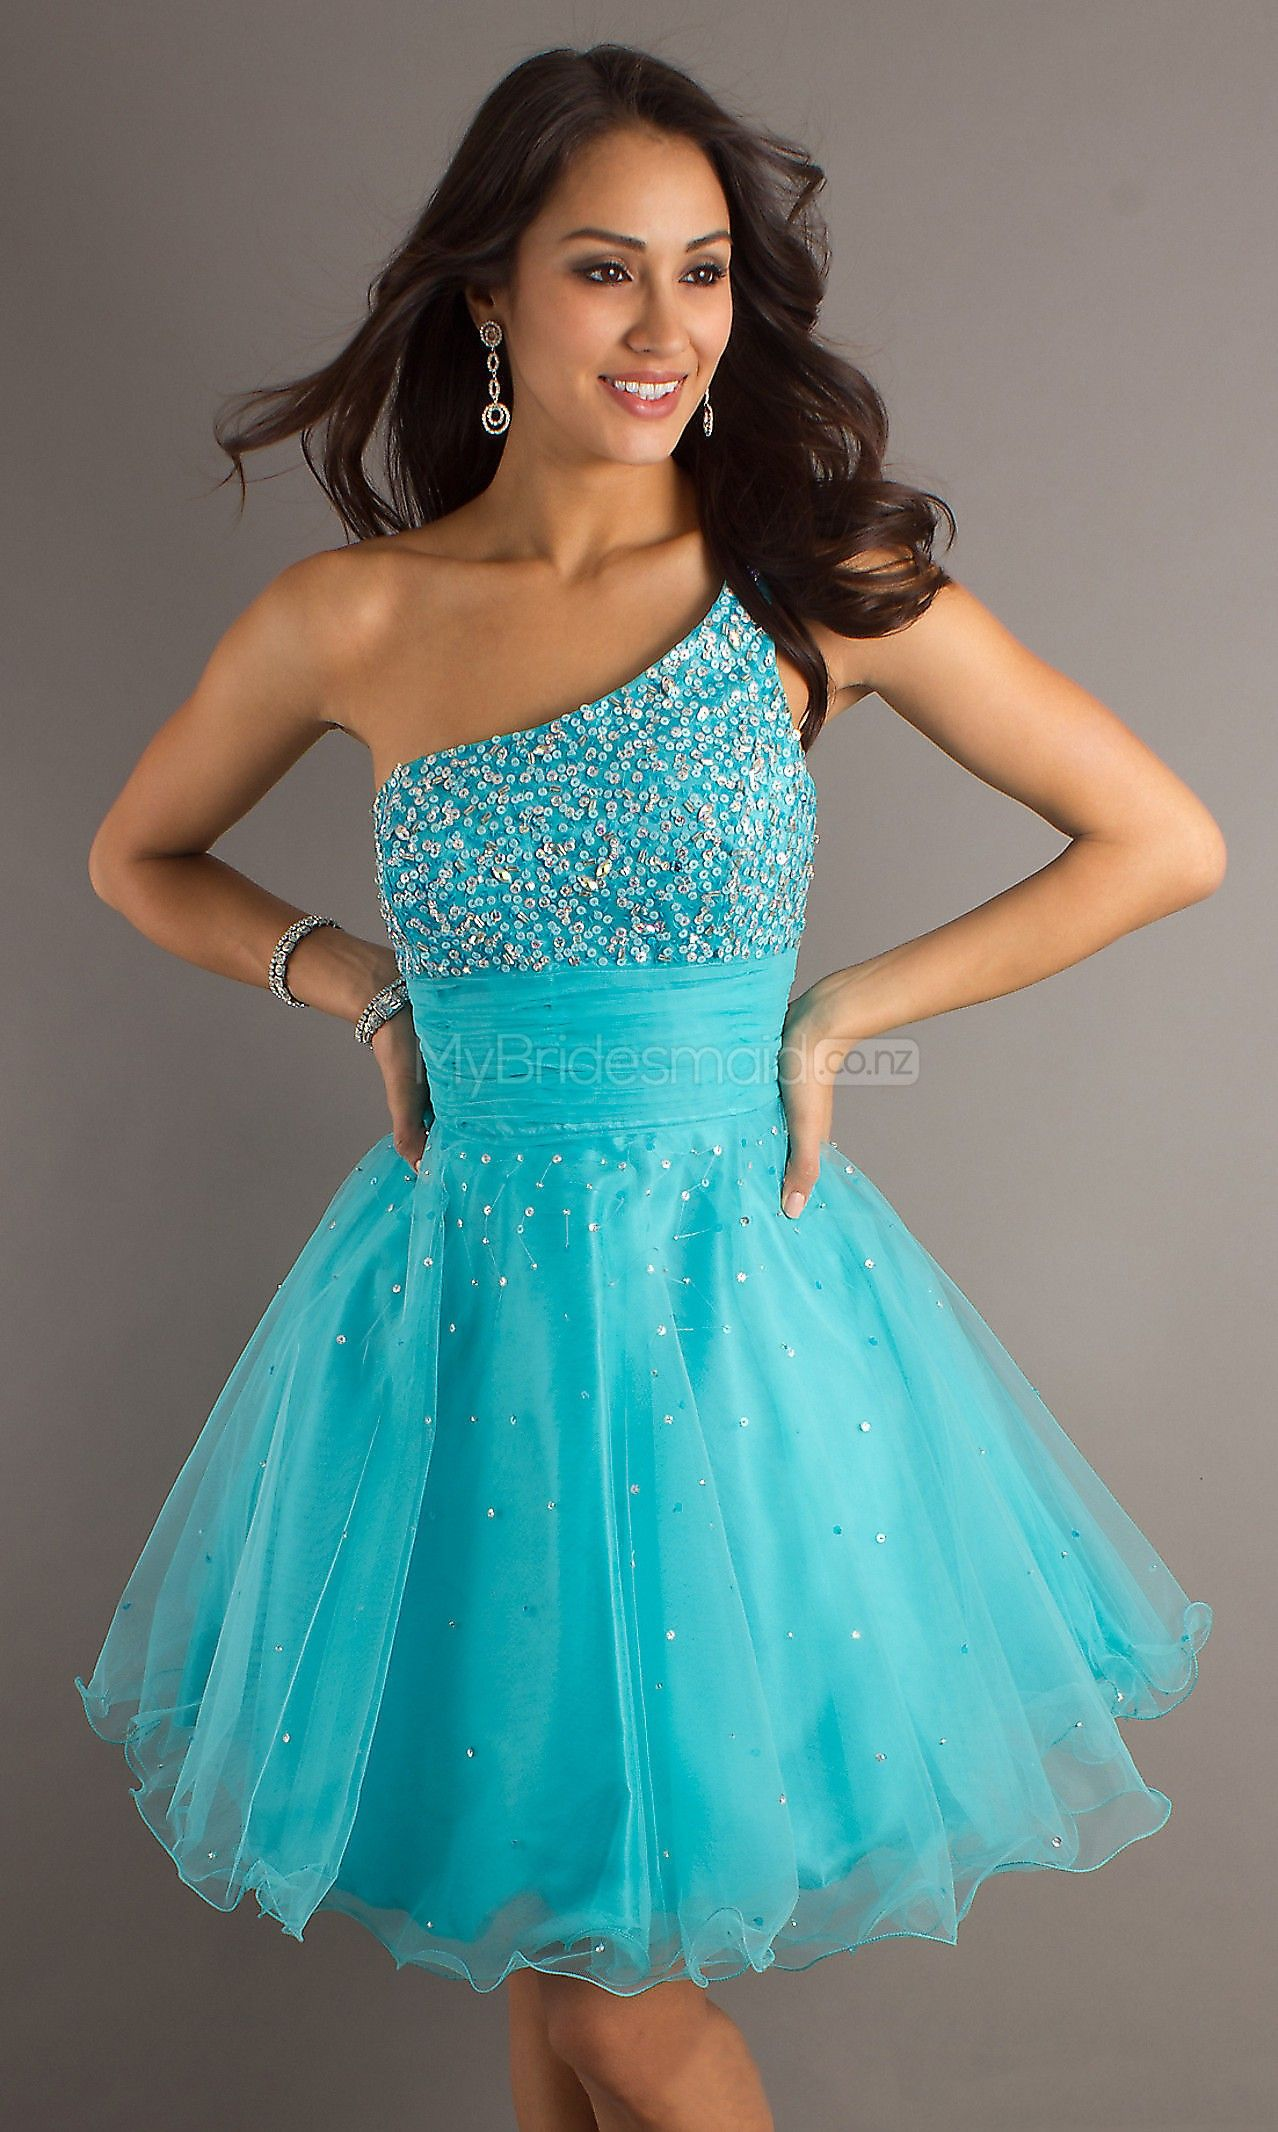 Turquoise, Aqua and Teal | Turquoise And Aqua Everything | Pinterest ...